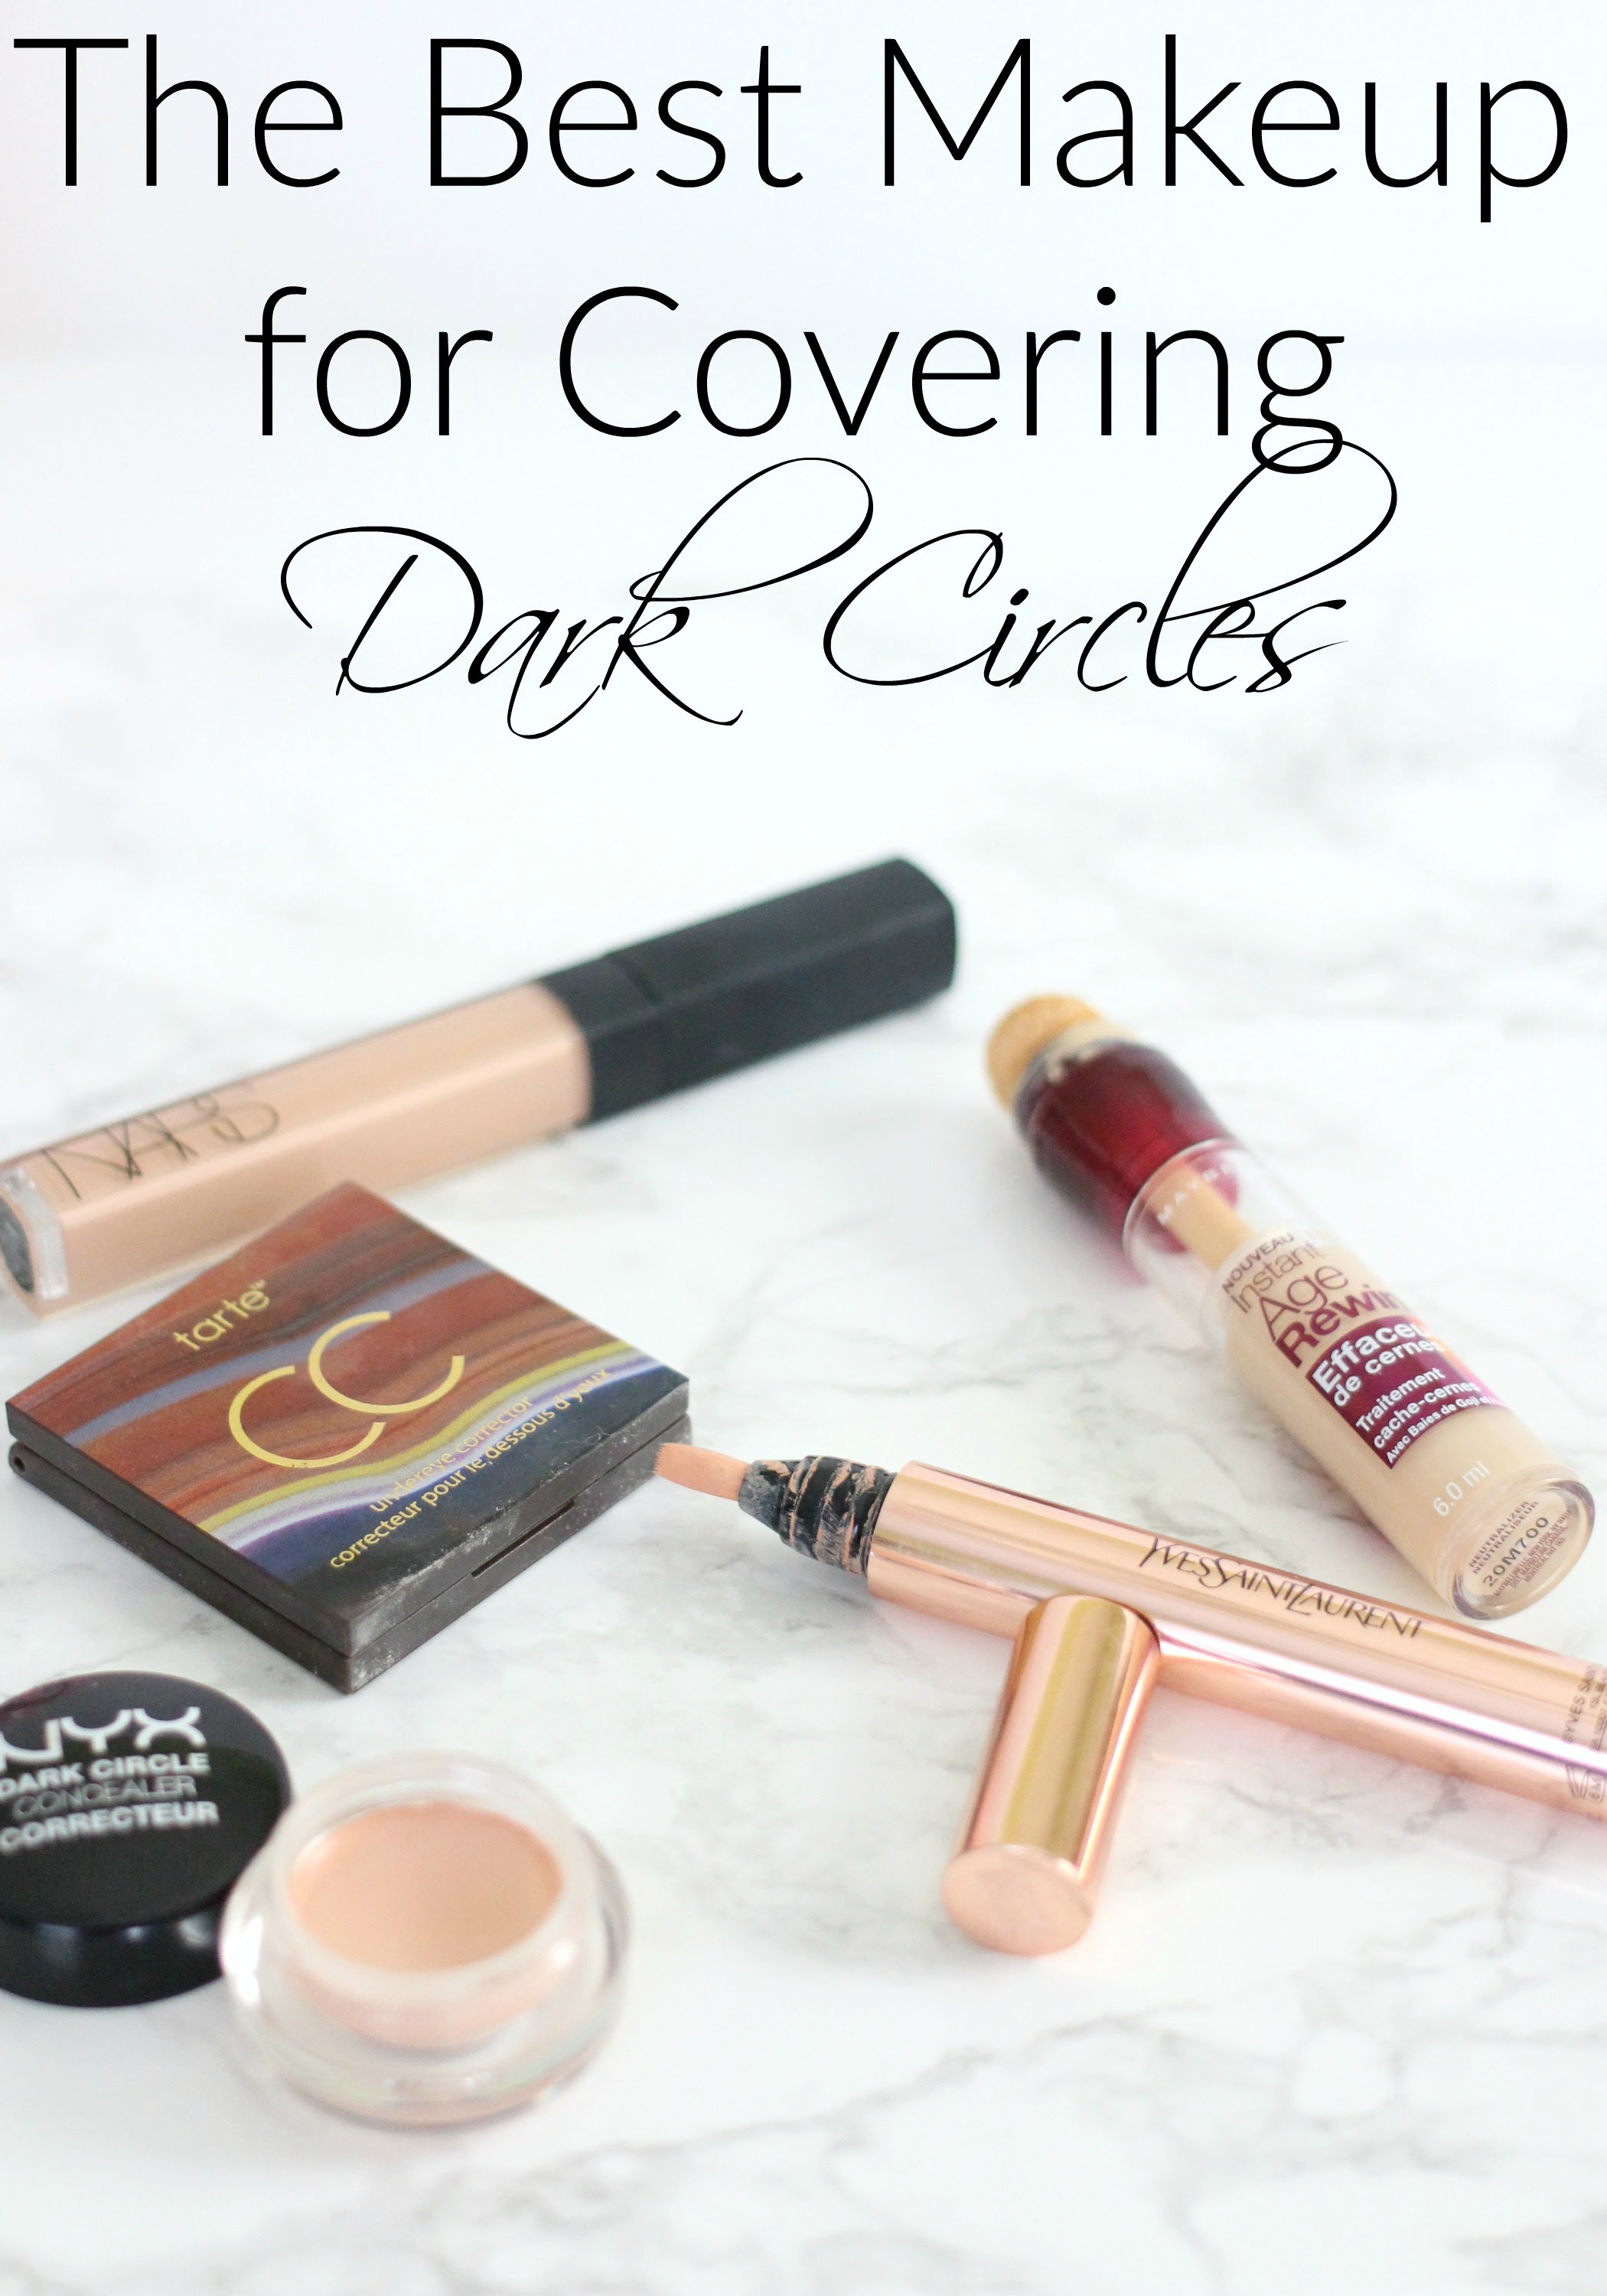 The Best Products for Covering Dark Under Eye Circles ...